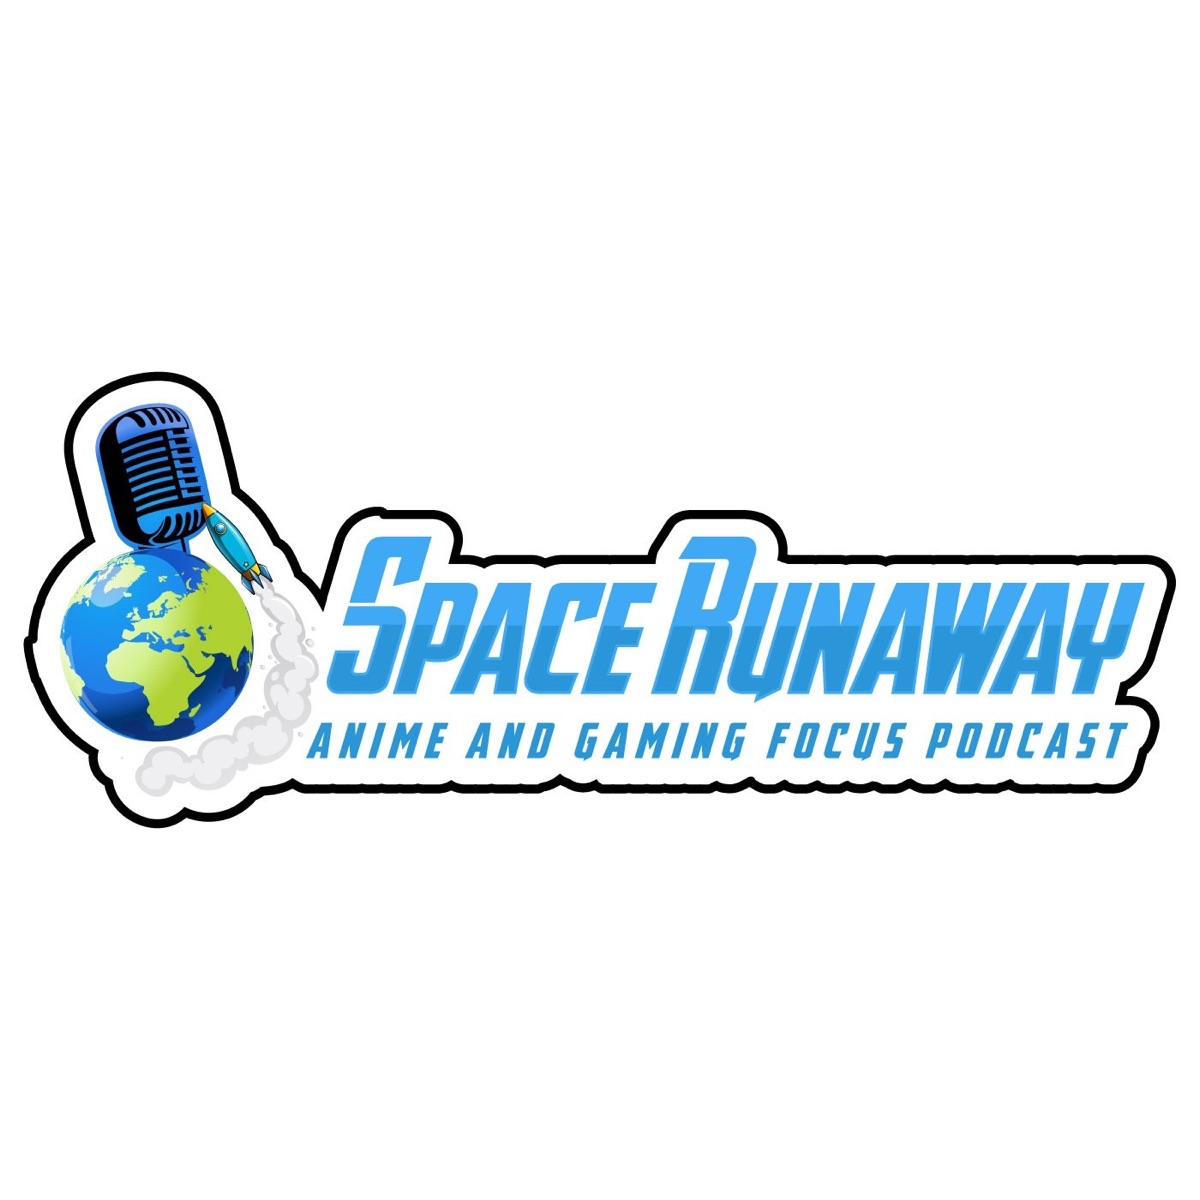 The Space Runaway Podcast